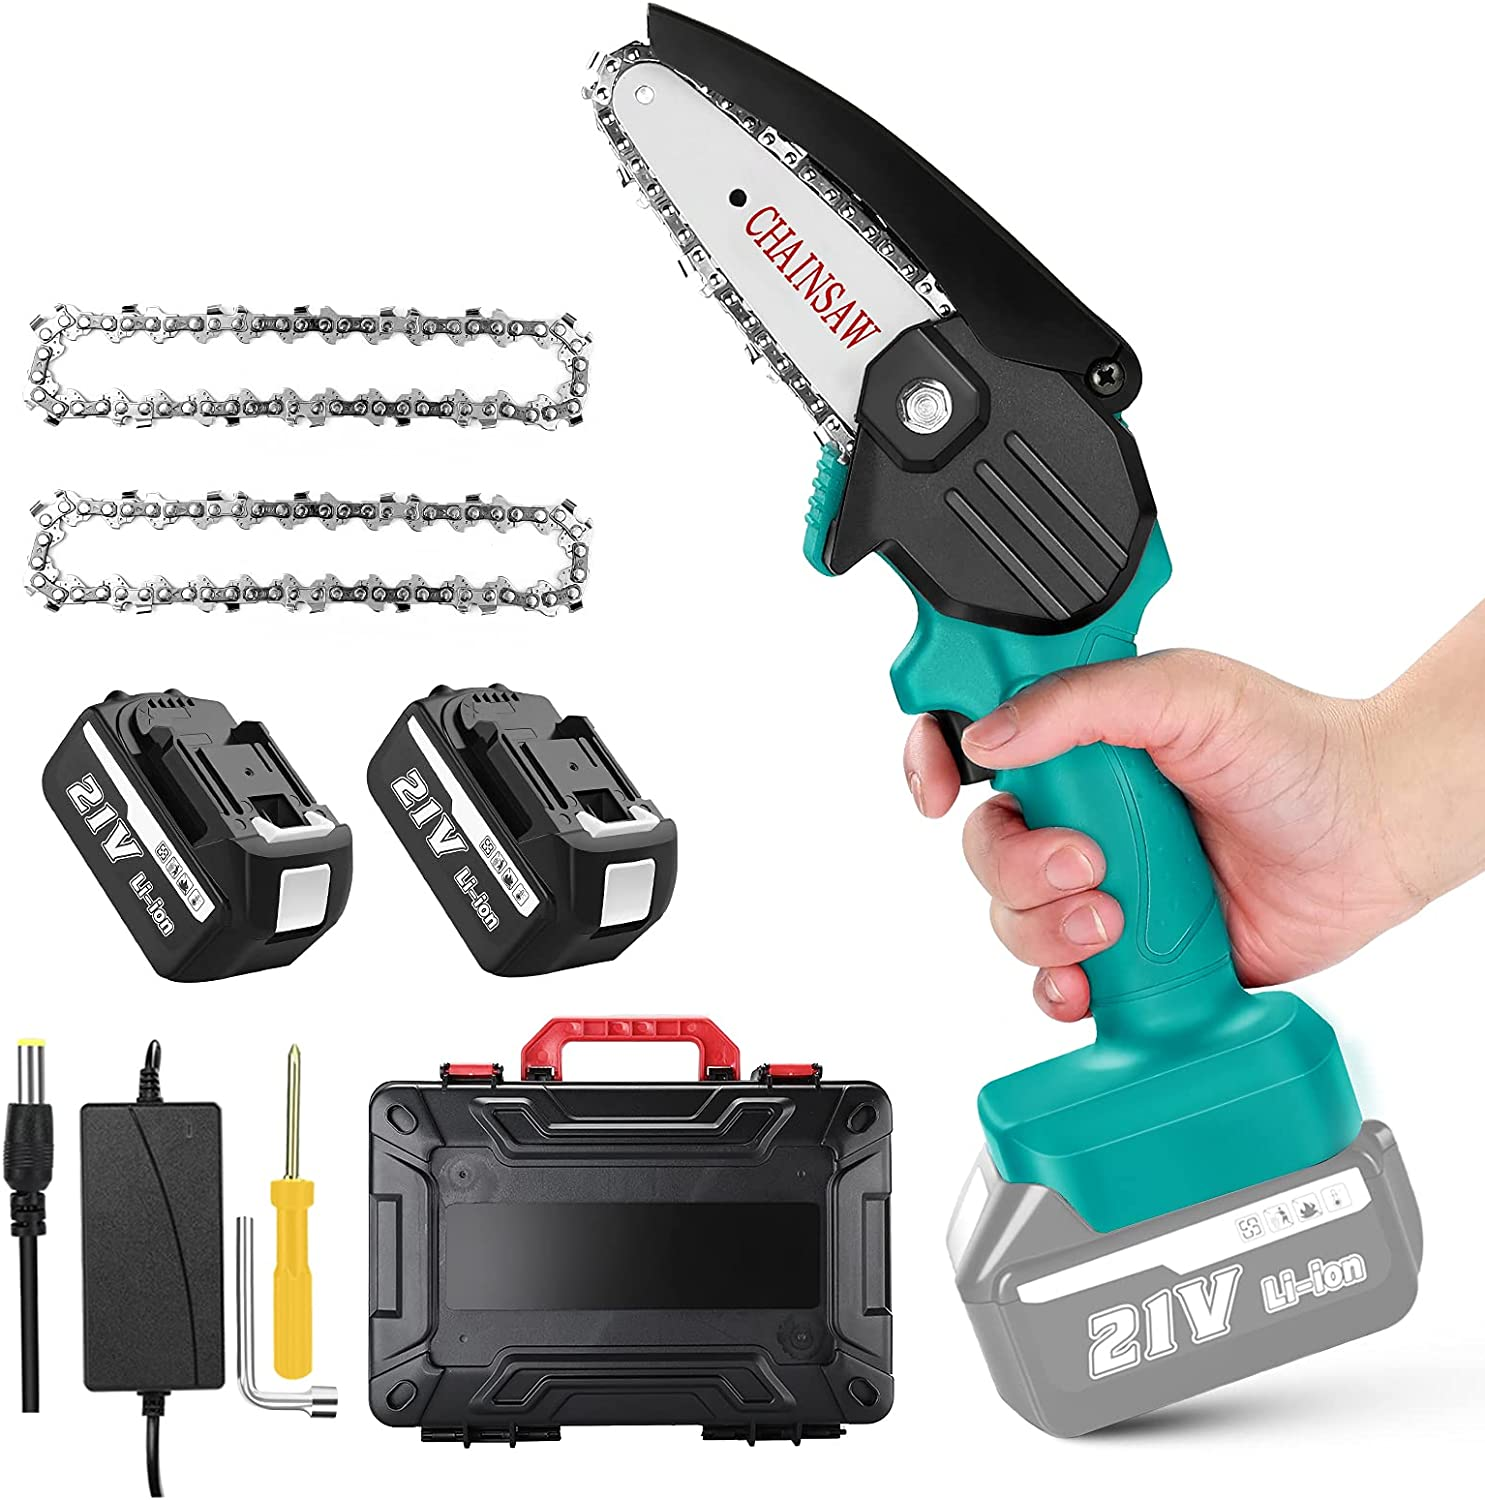 Mini Popular products Cordless Chainsaw Branded goods Electric Saw Pruning Seesii Por